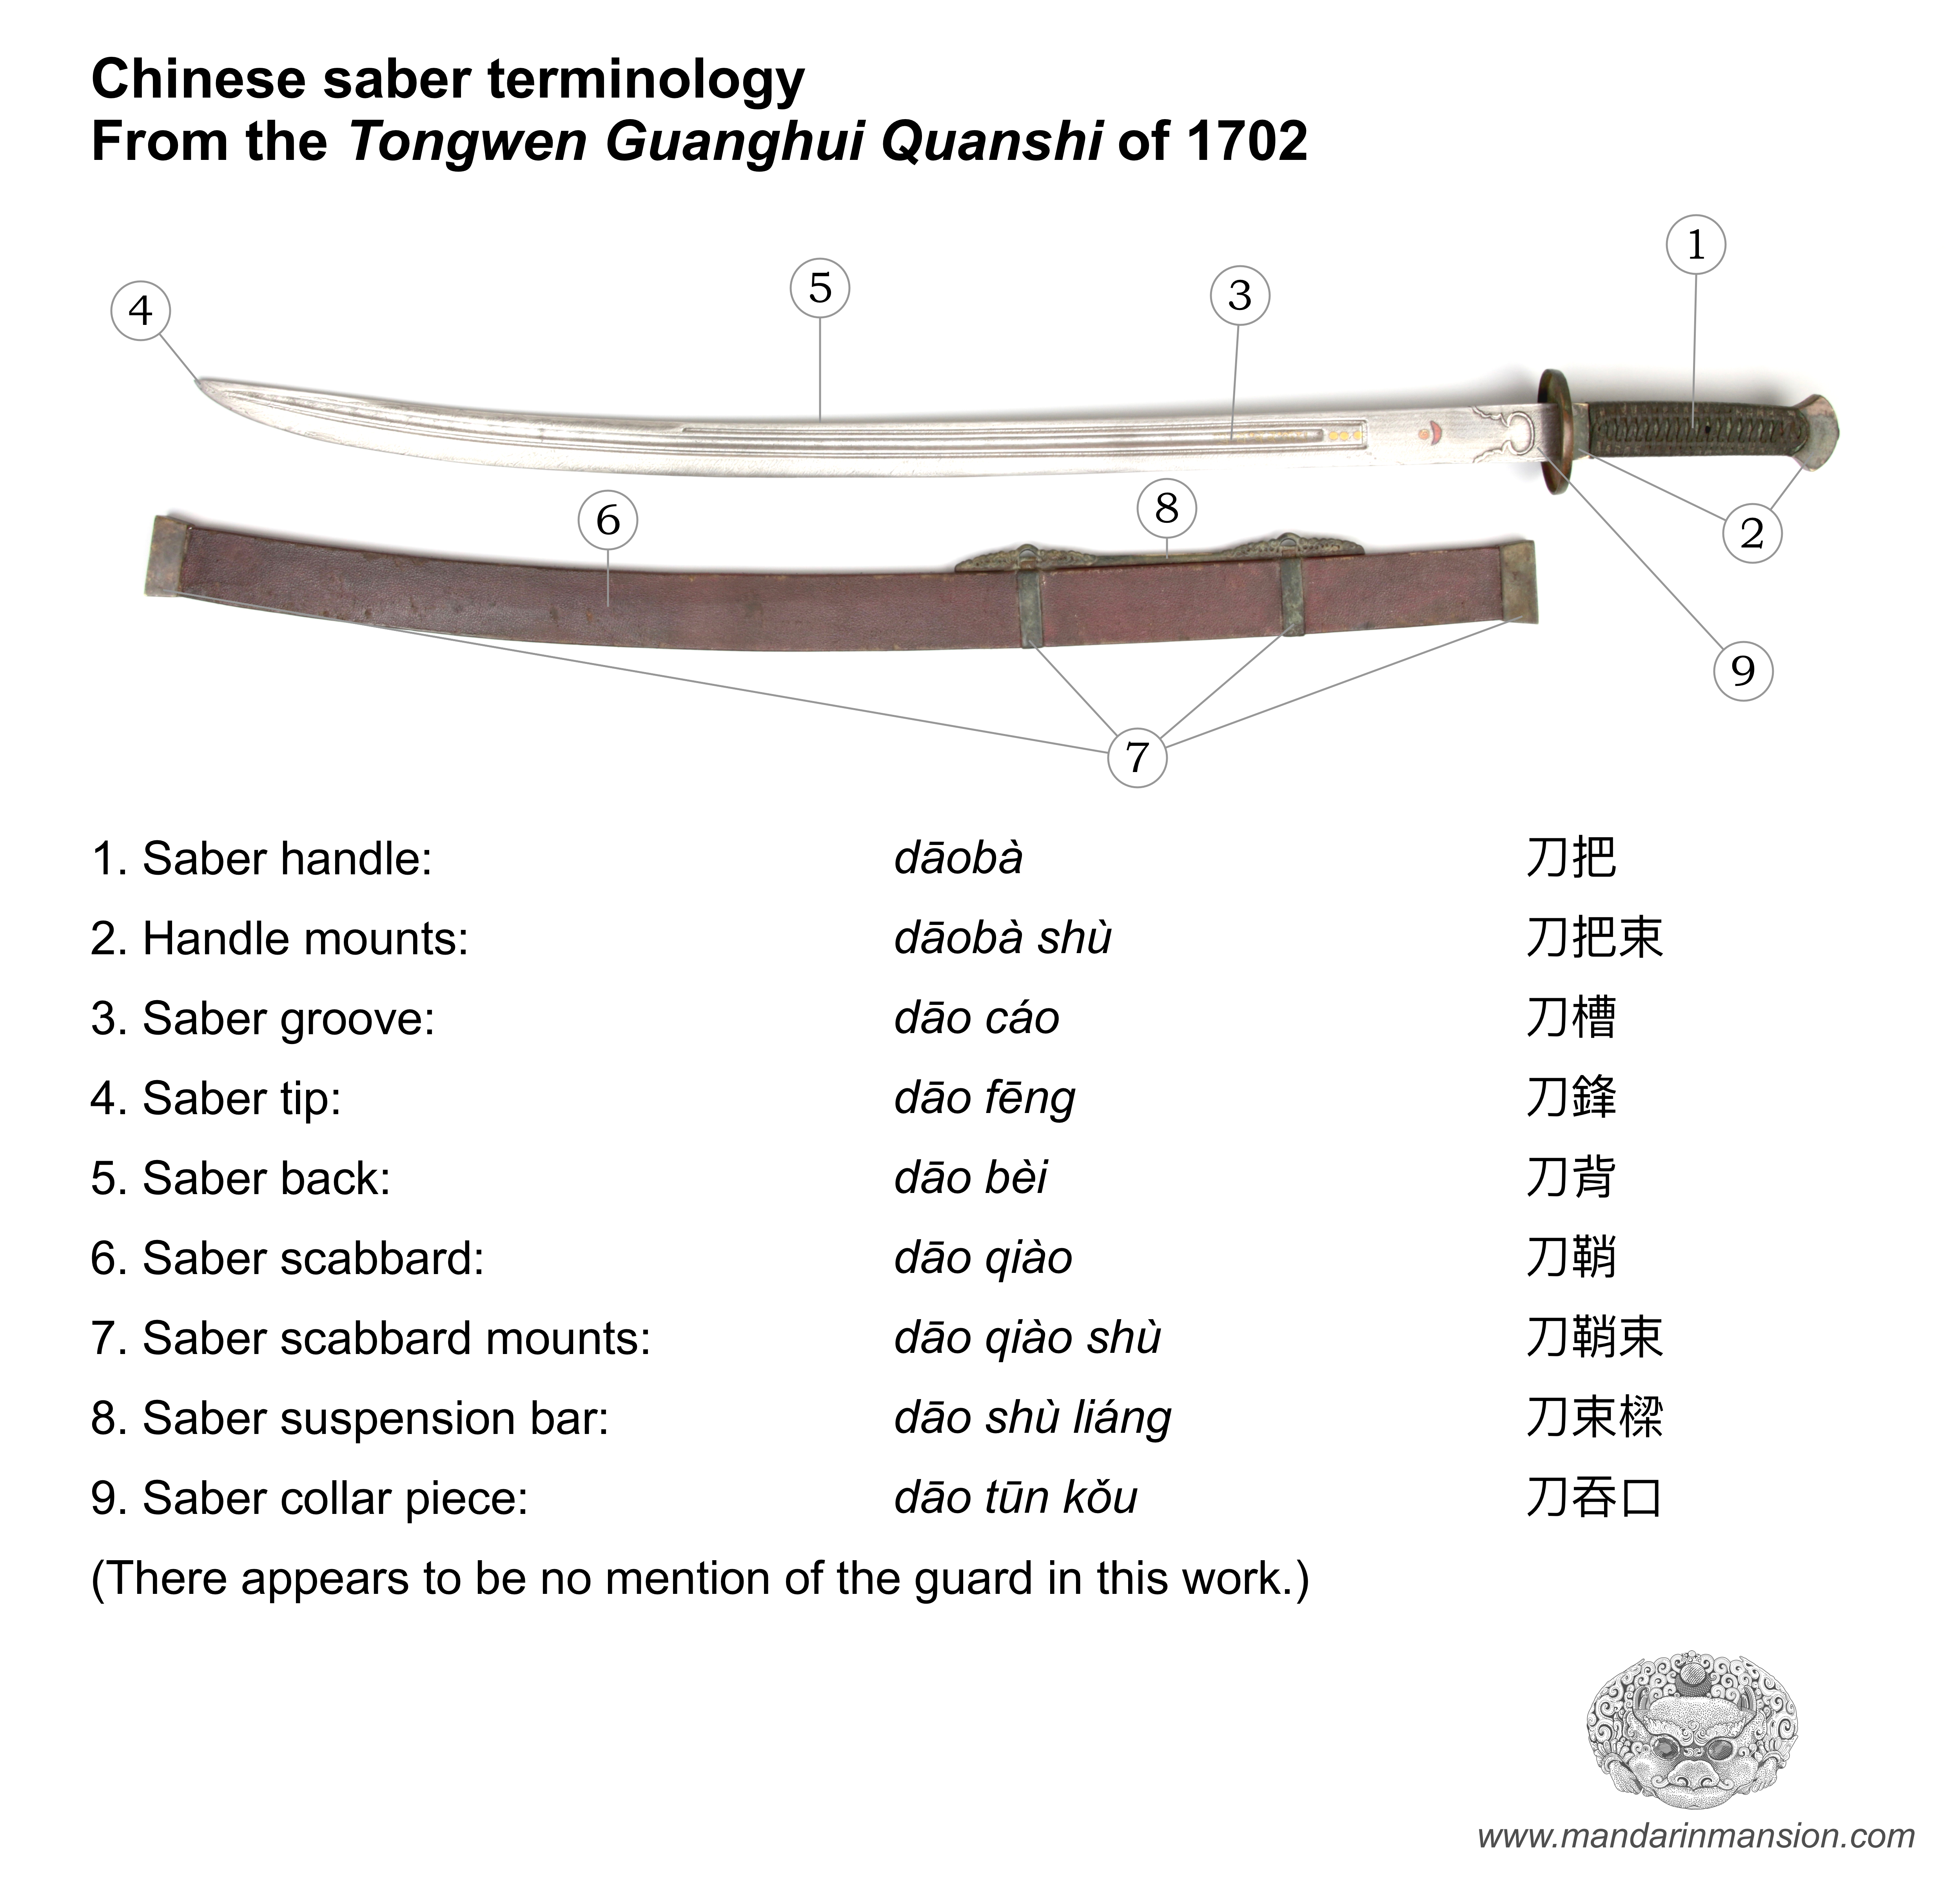 Chinese saber terminology overview of 1702